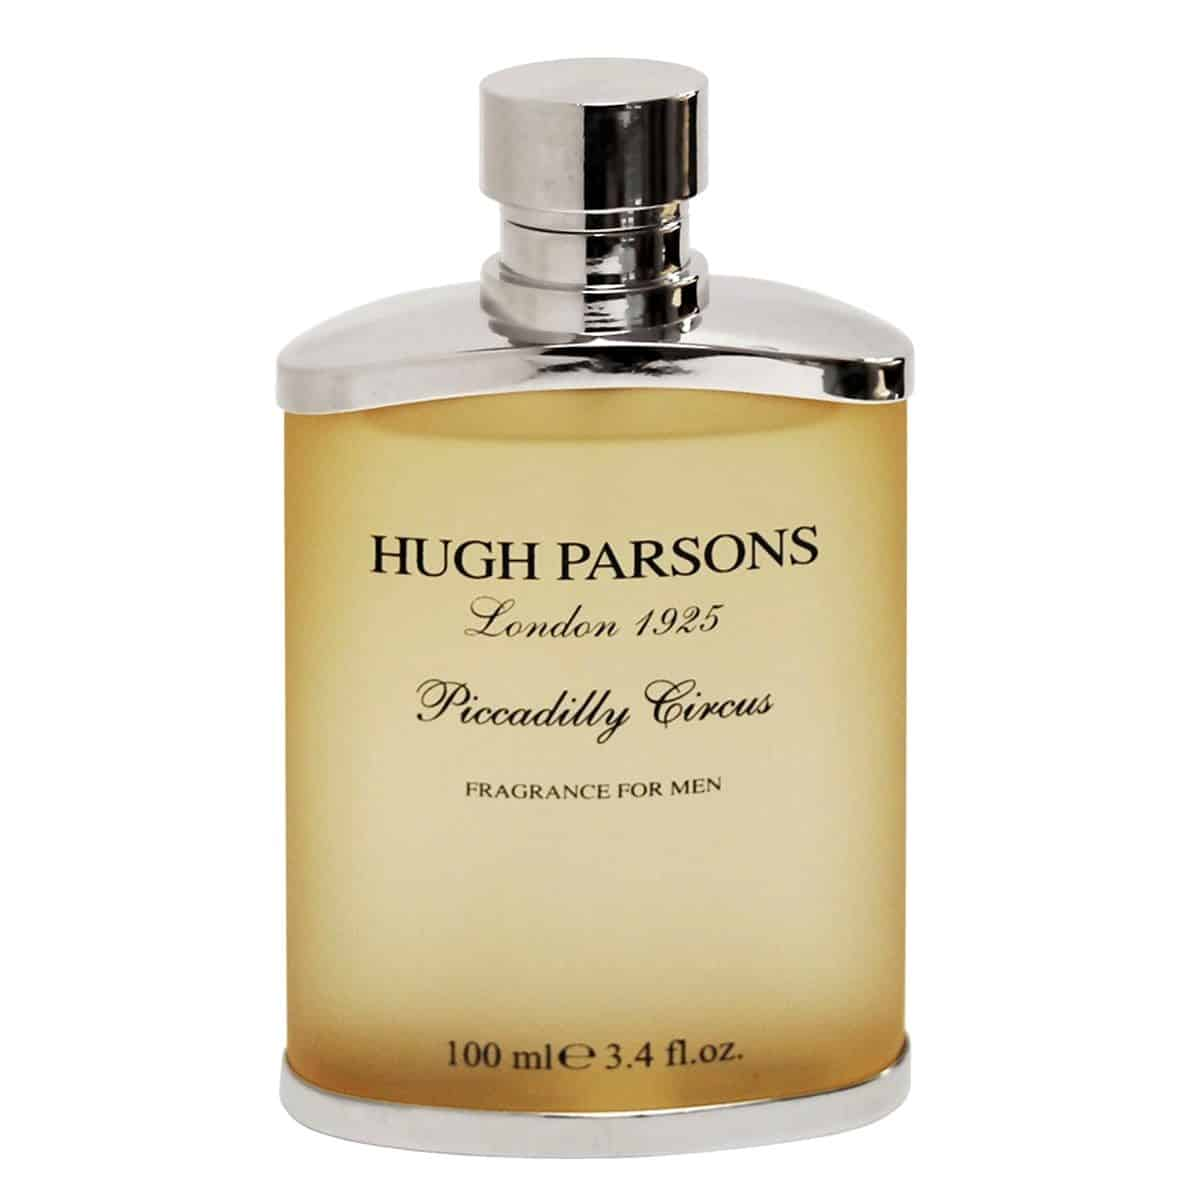 Hugh Parsons PICCADILLY CIRCUS